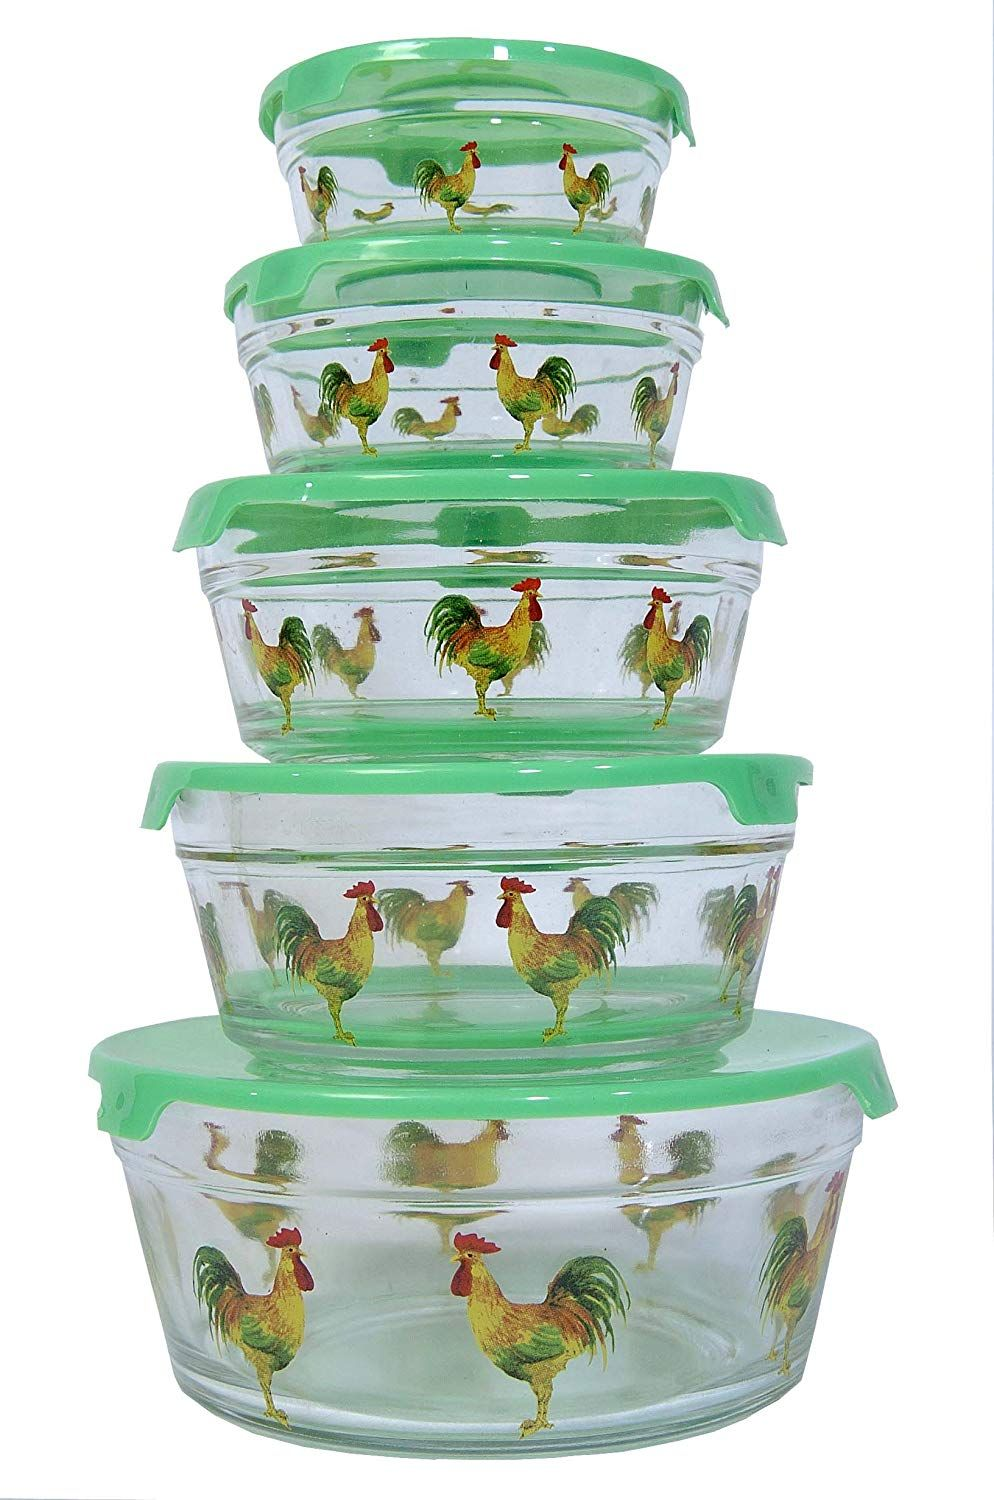 44+ Cake container with lid glass inspirations